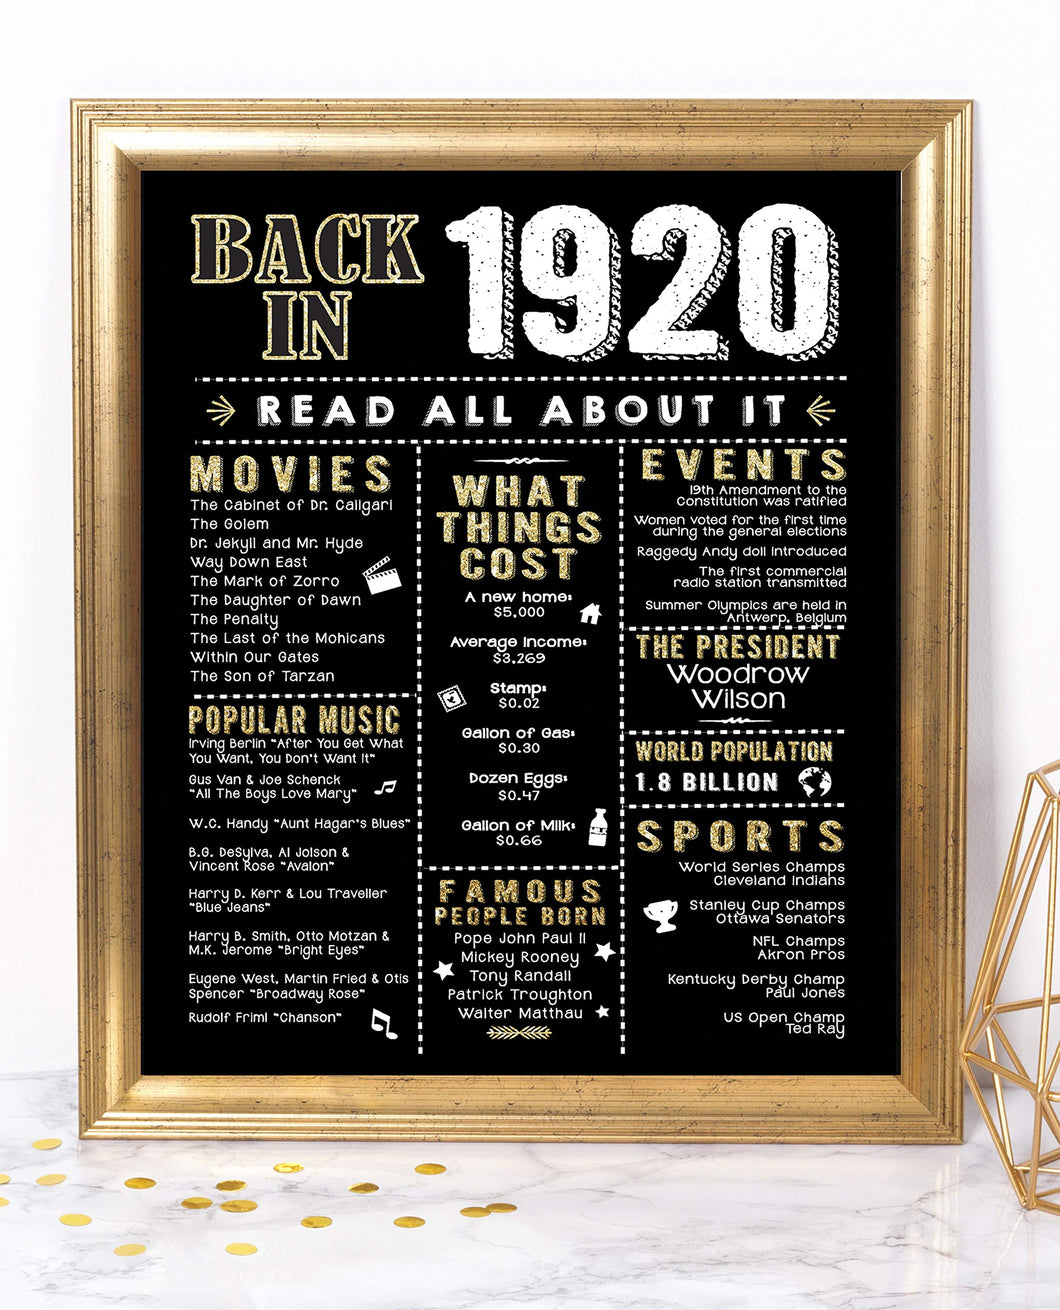 Roaring 20s Clipart Free | Free download on ClipArtMag